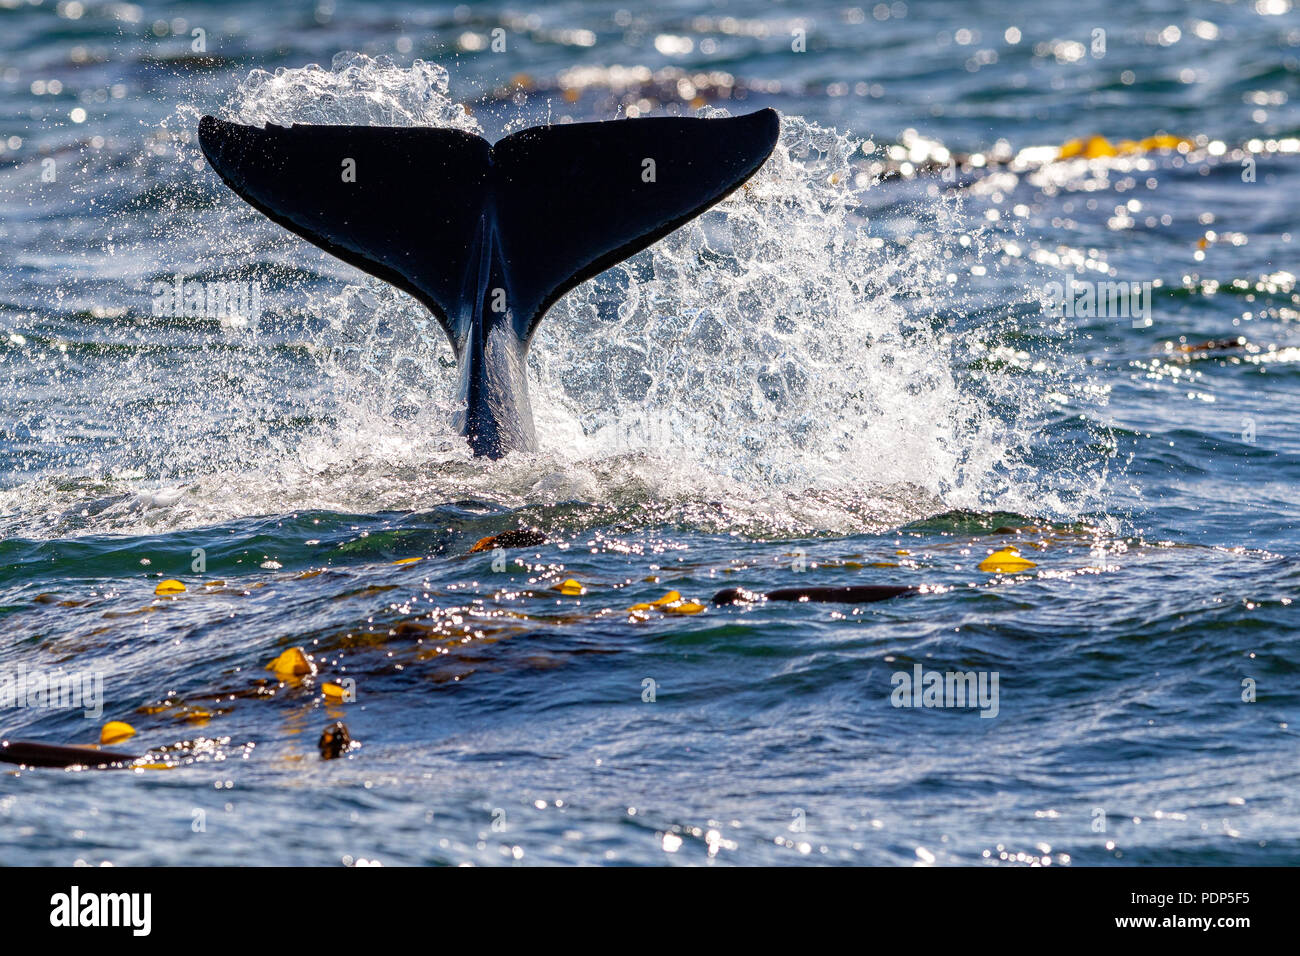 Northern resident killer whale spalshing with fluke near Lizard Point, Malcolm Island,  Vancouver Island, British Columbia, Canada - Stock Image